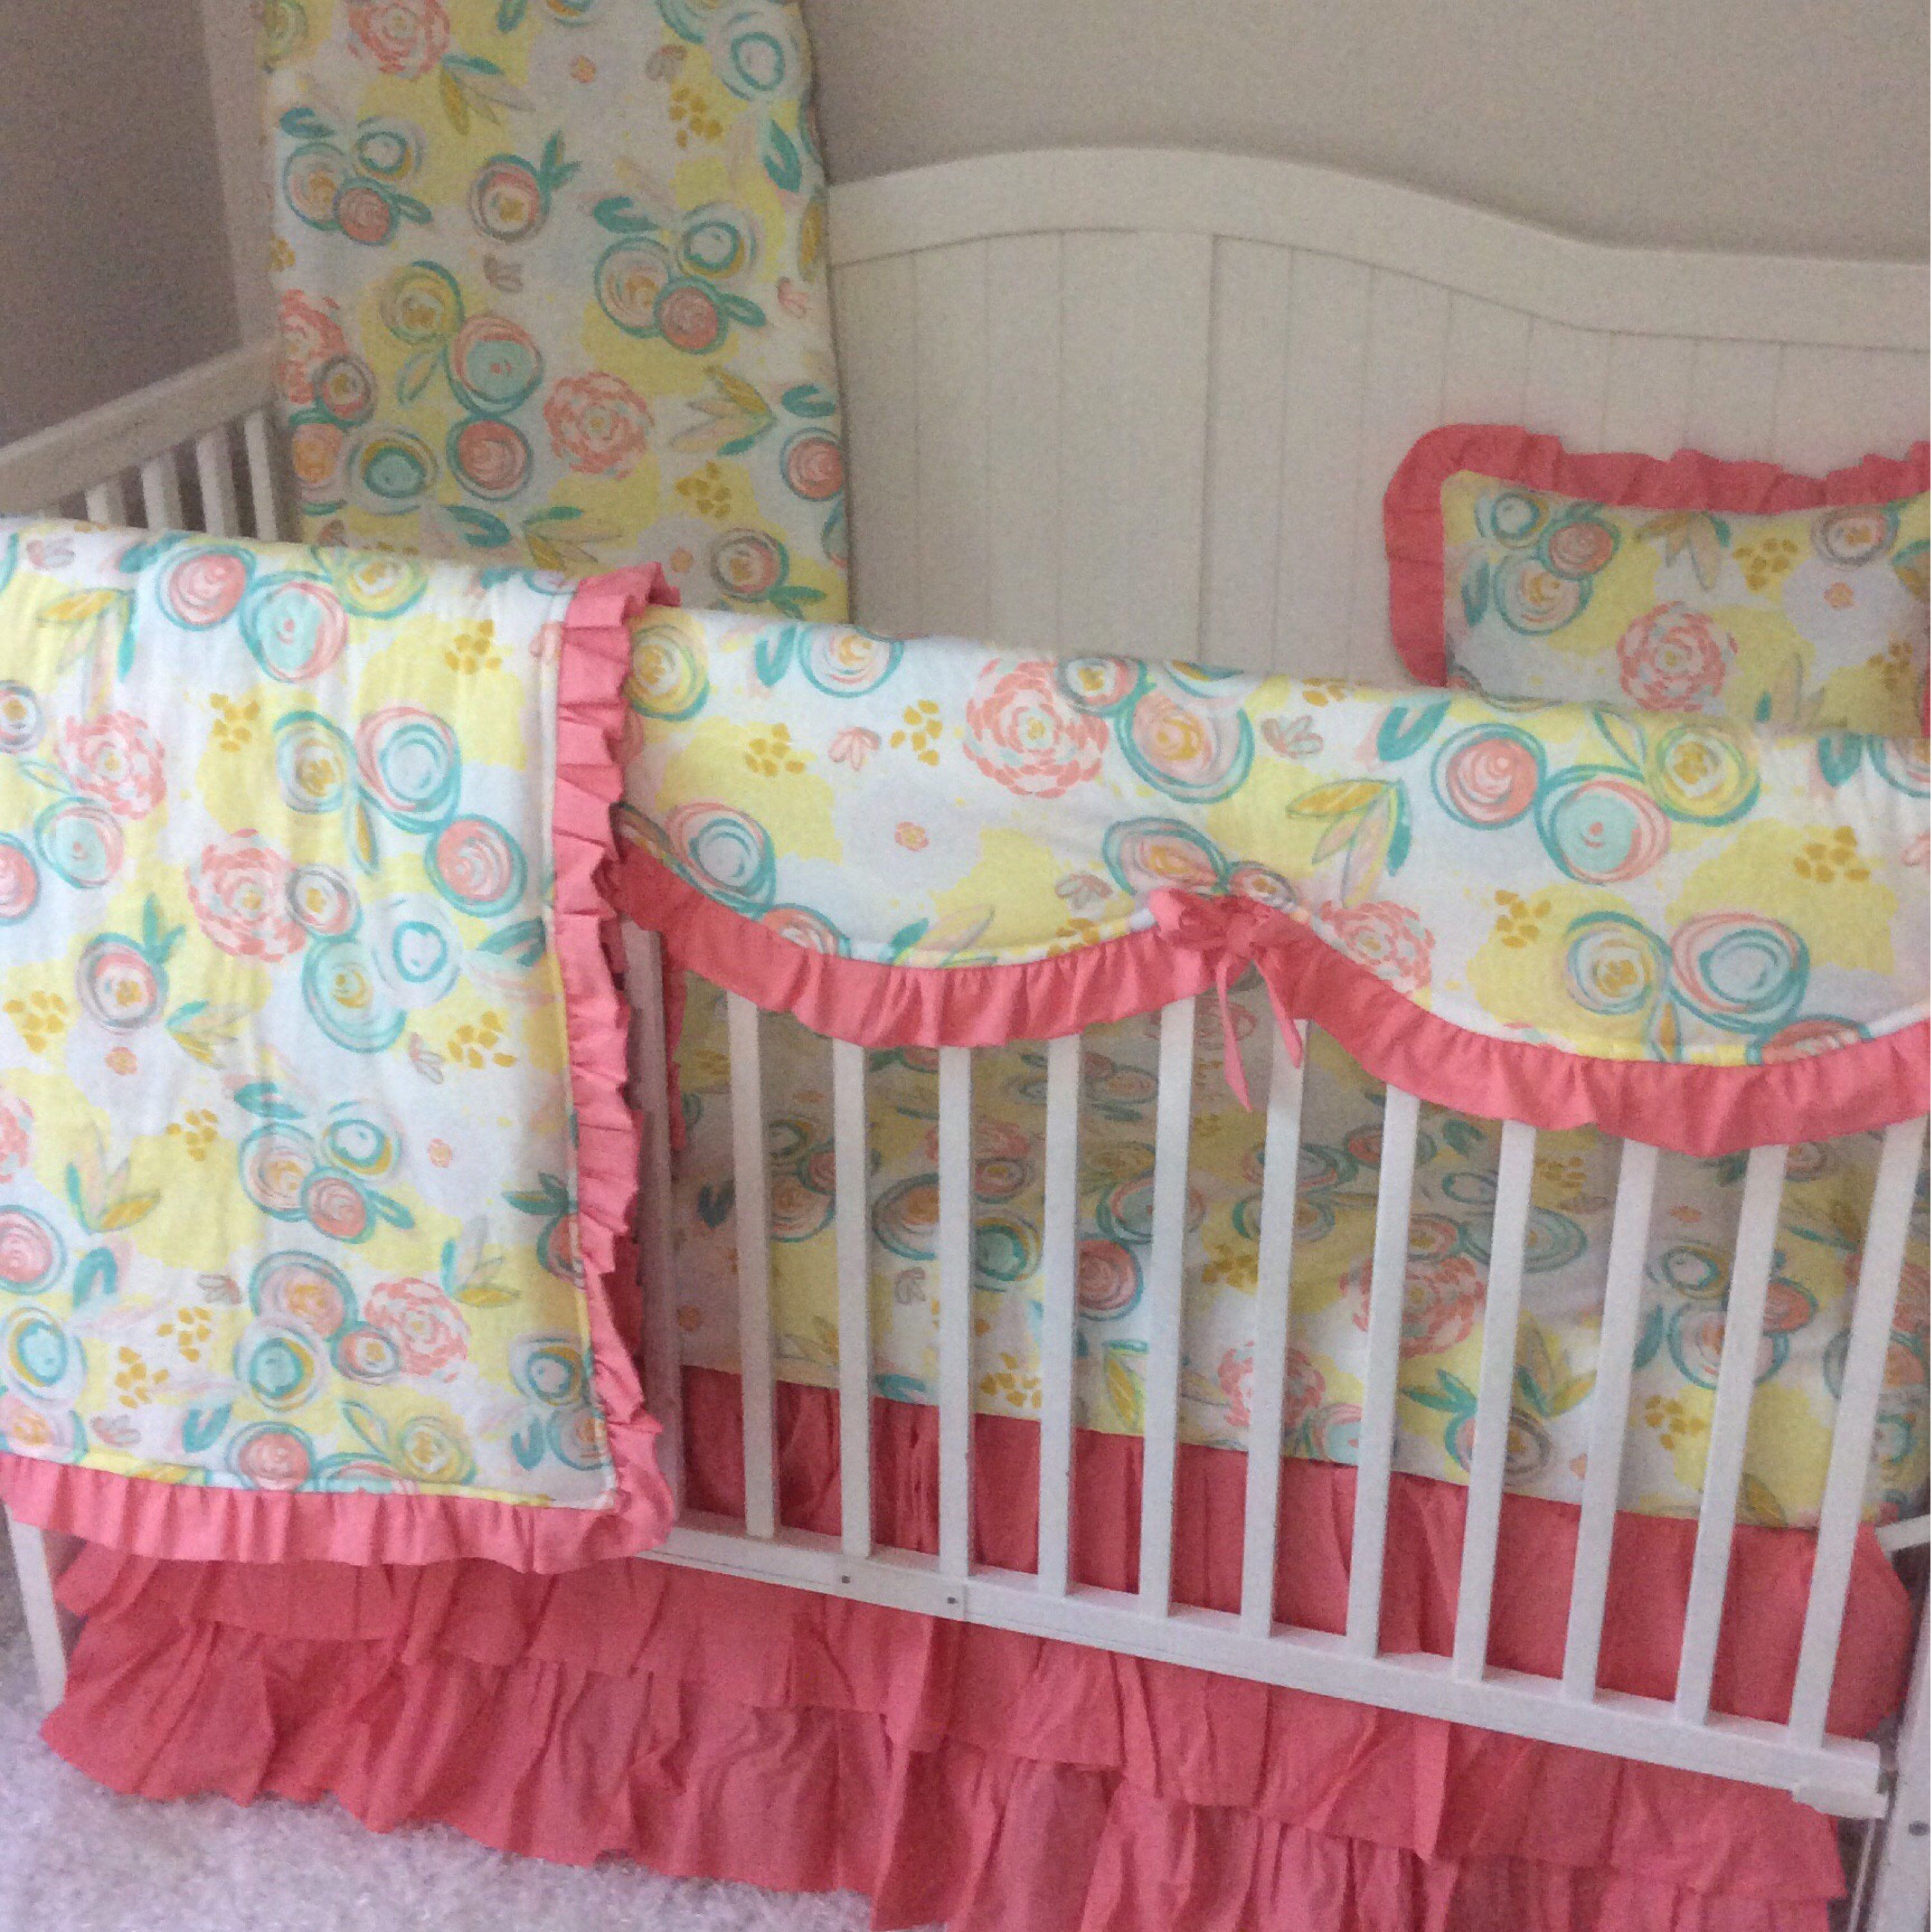 listing and watercolor coral aqua com blush floral etsy bedding turquoise pin girl a with favorite peach crib s from my pink personal ruffles set bed gold shop teal baby yellow